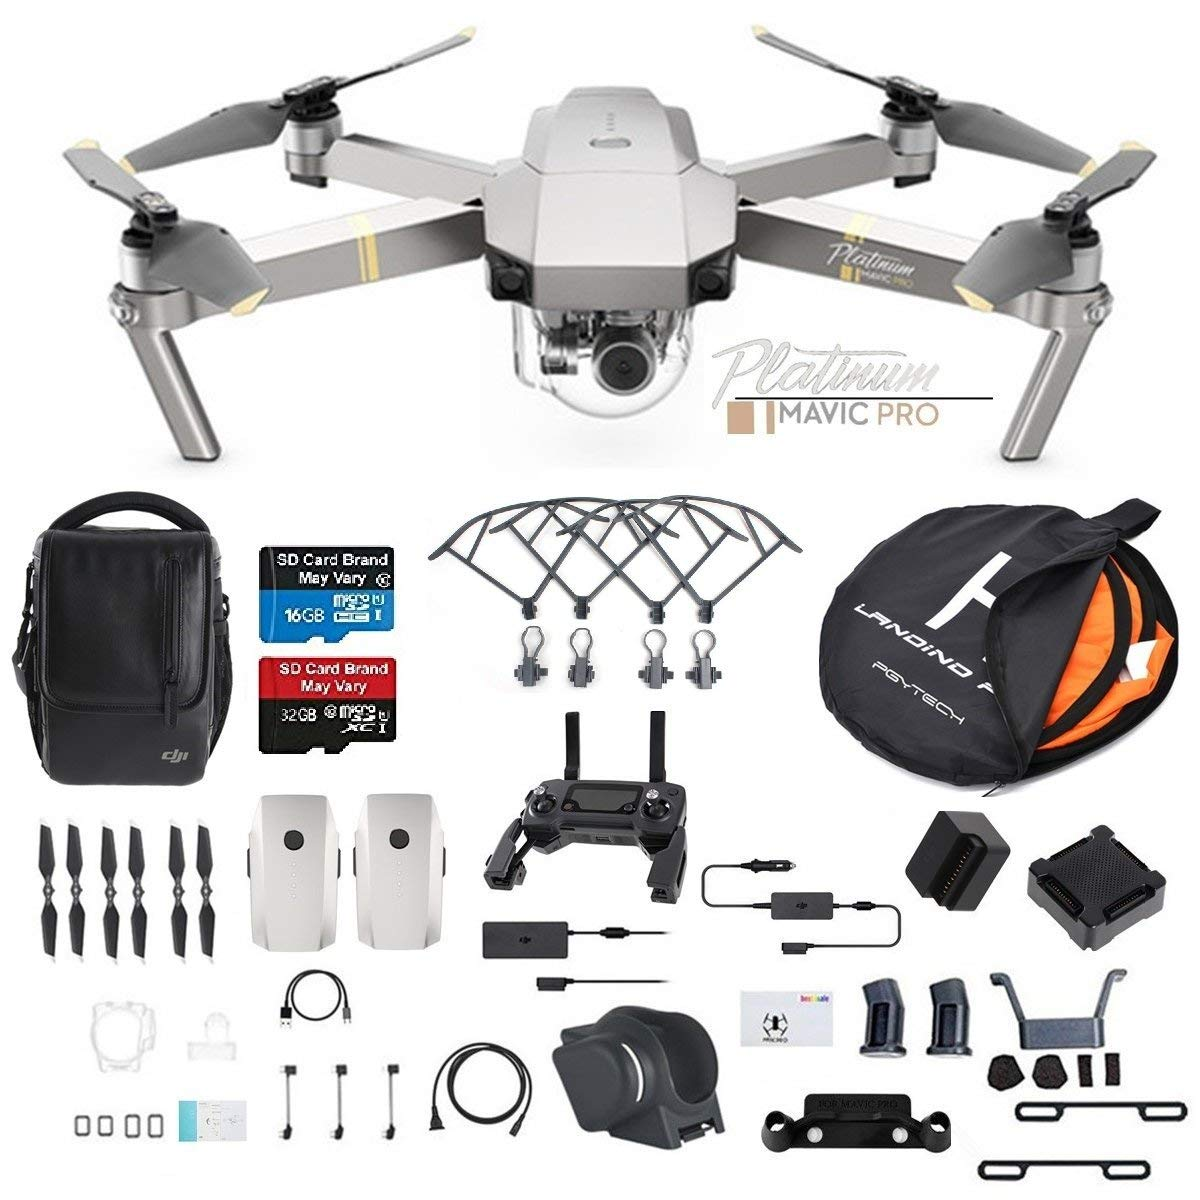 DJI Mavic Pro Platinum Fly More Combo Collapsible Quadcopter Drone (Latest Version) Bundle with Additional Memory Card, 2 Extra Battery, Landing Kit and More